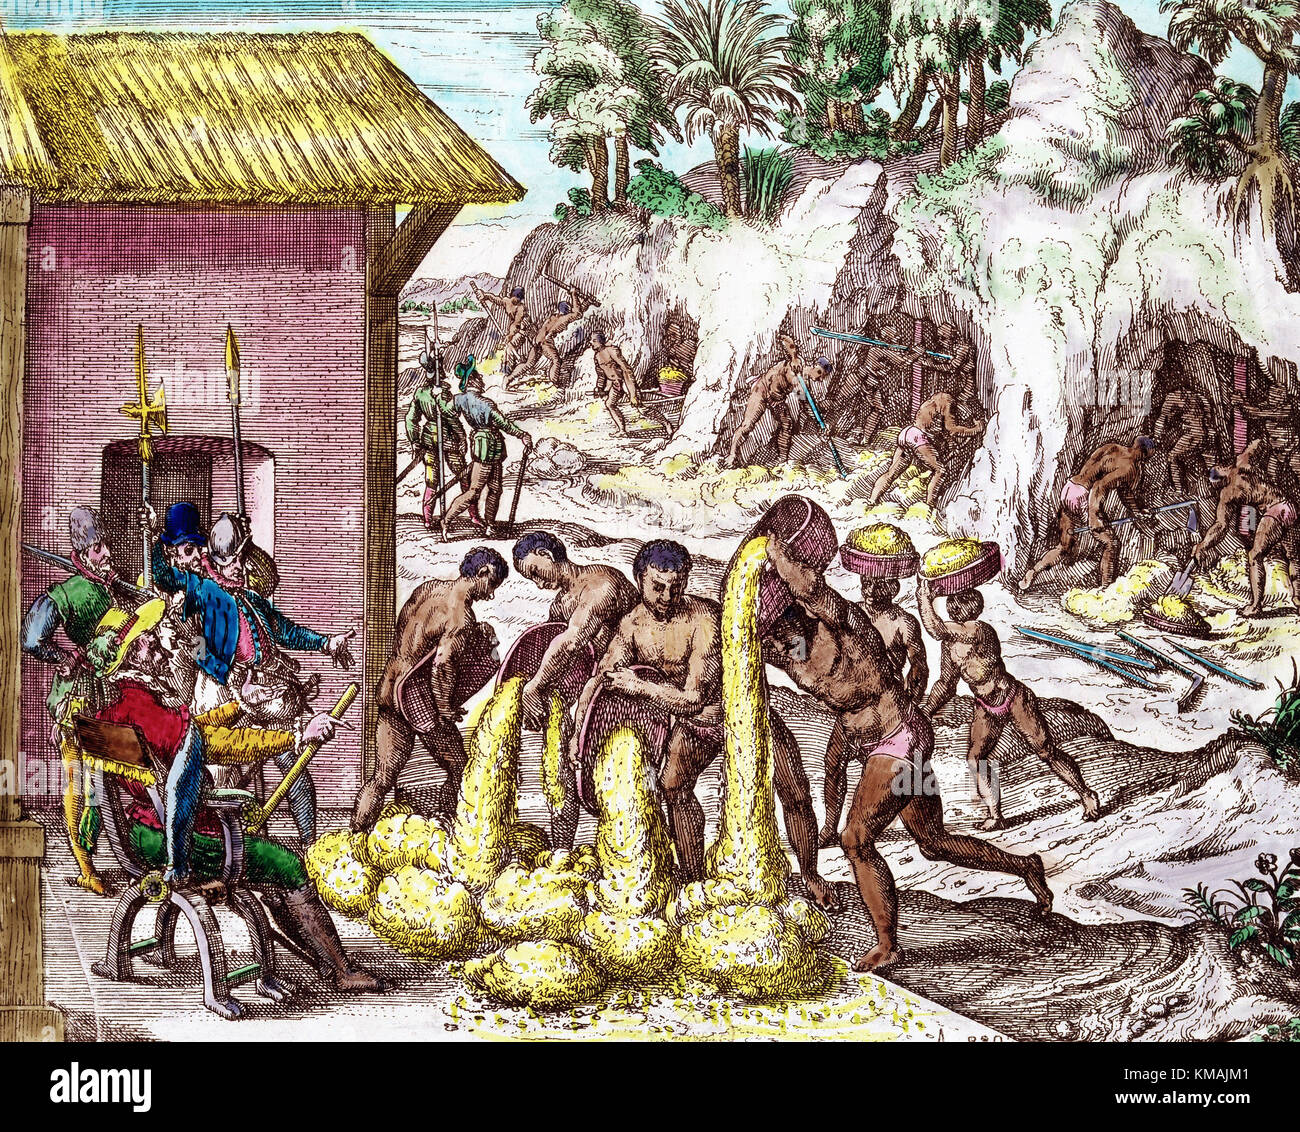 Gold And Silver Mining In Panama Mail: 16th Century Bry Stock Photos & 16th Century Bry Stock